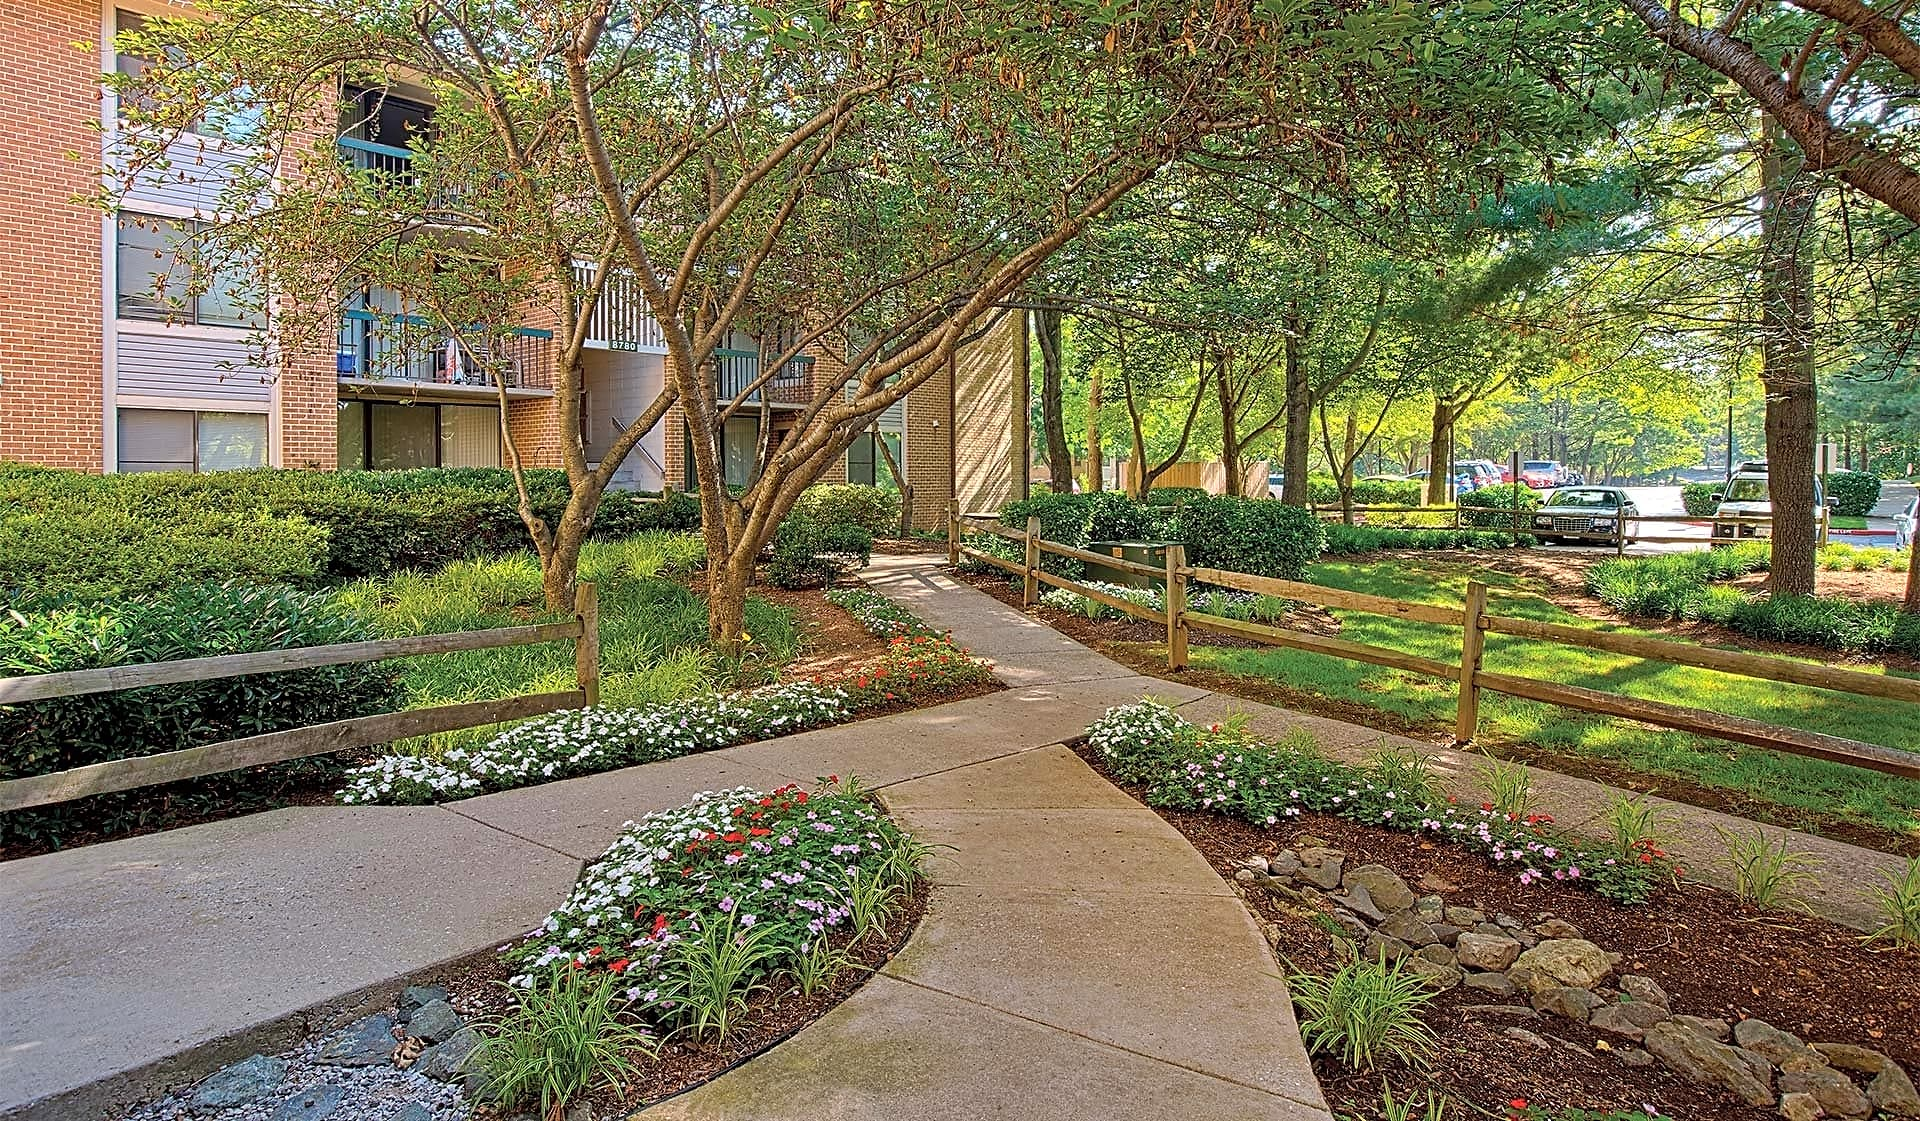 Take a stroll through our landscaped grounds